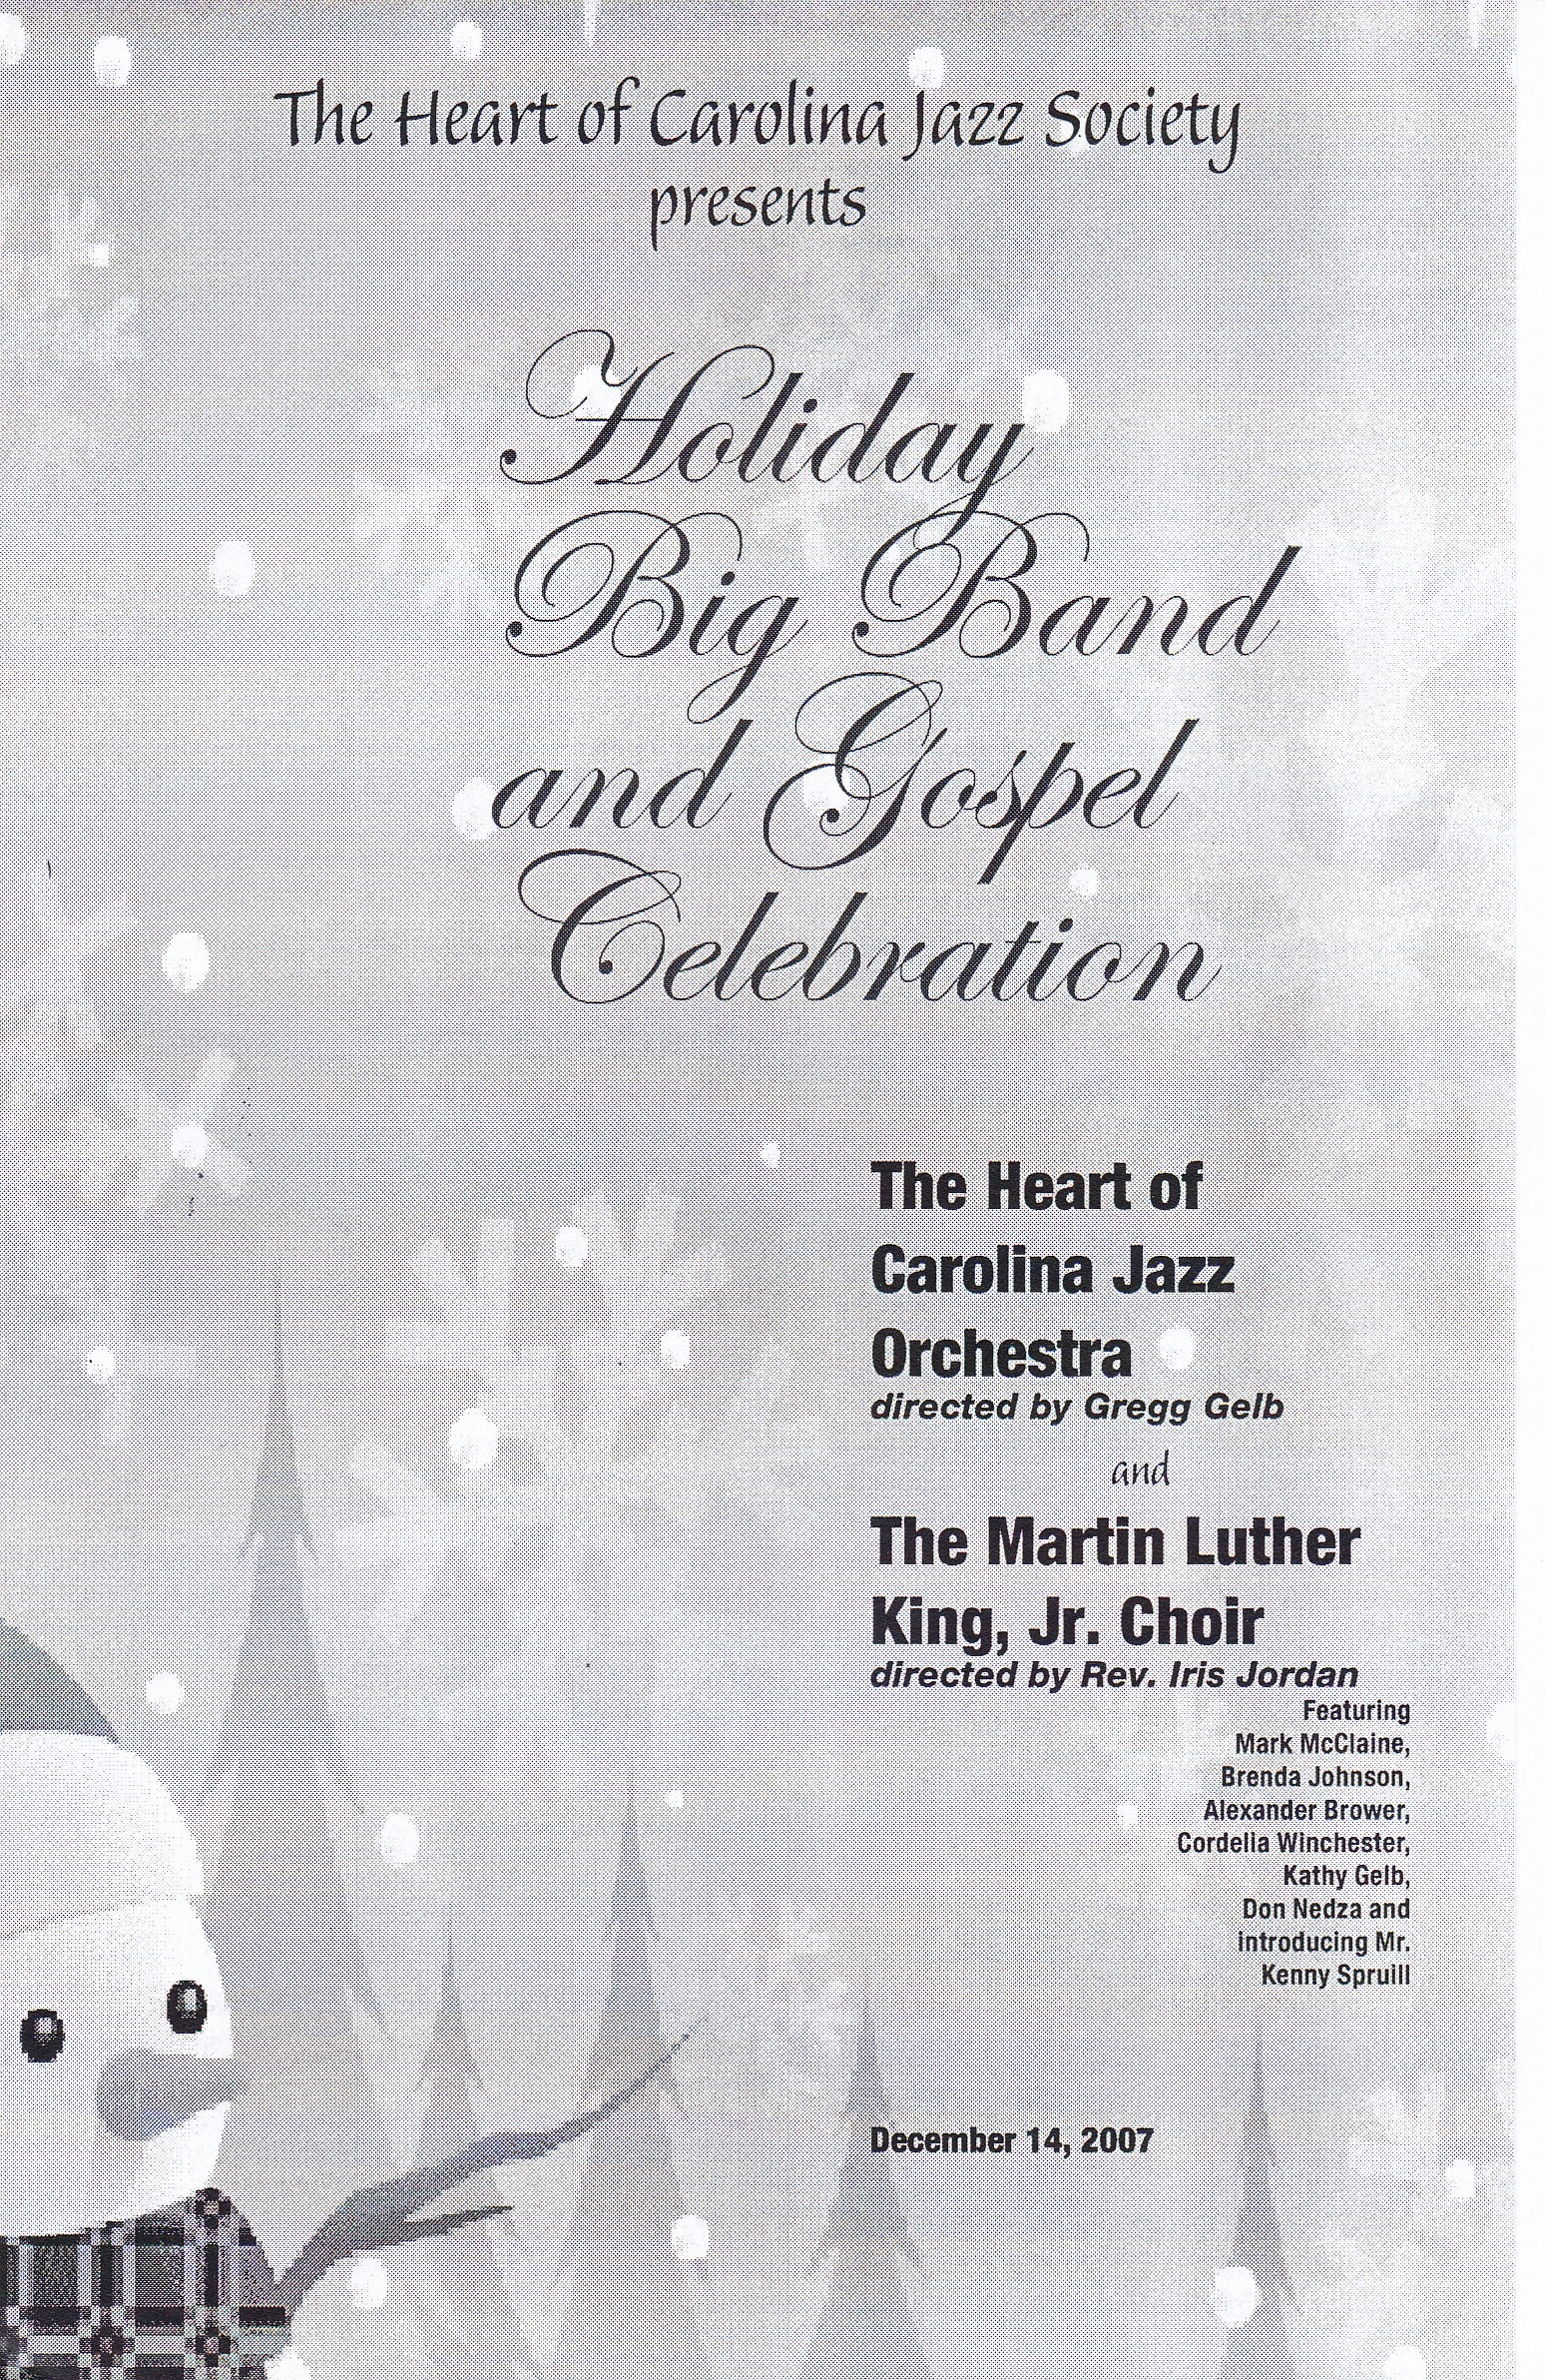 HOCJO-Guest-artists-the-MLK-Jr-Community-Choir